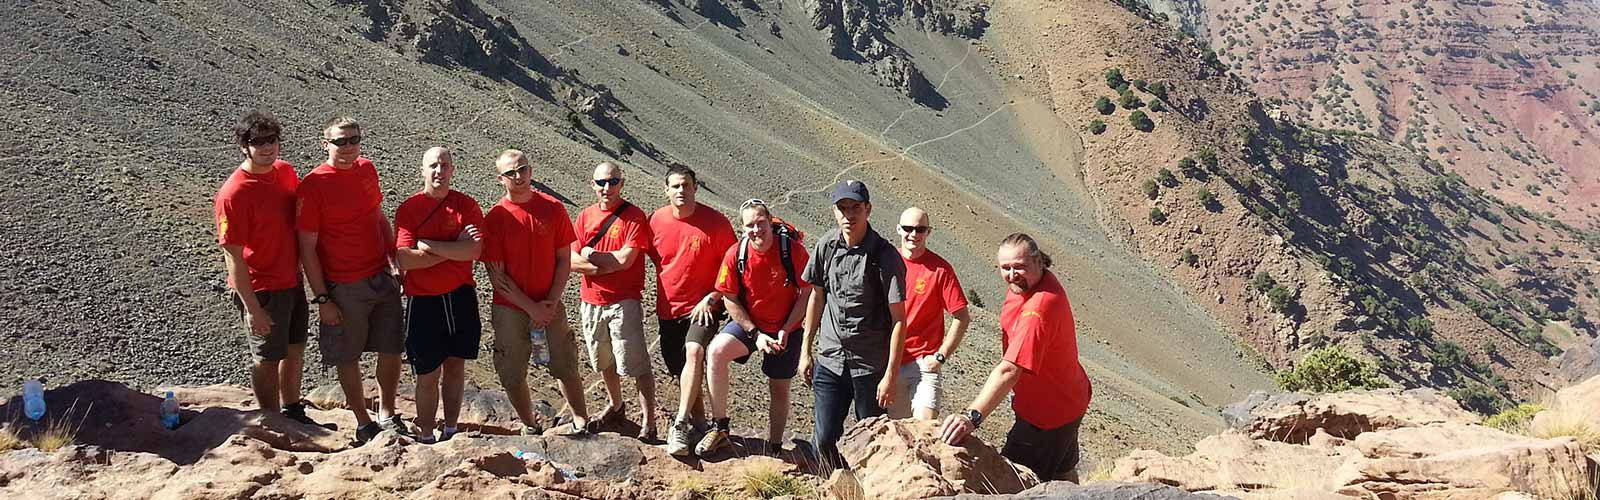 School trips abroad in Morocco